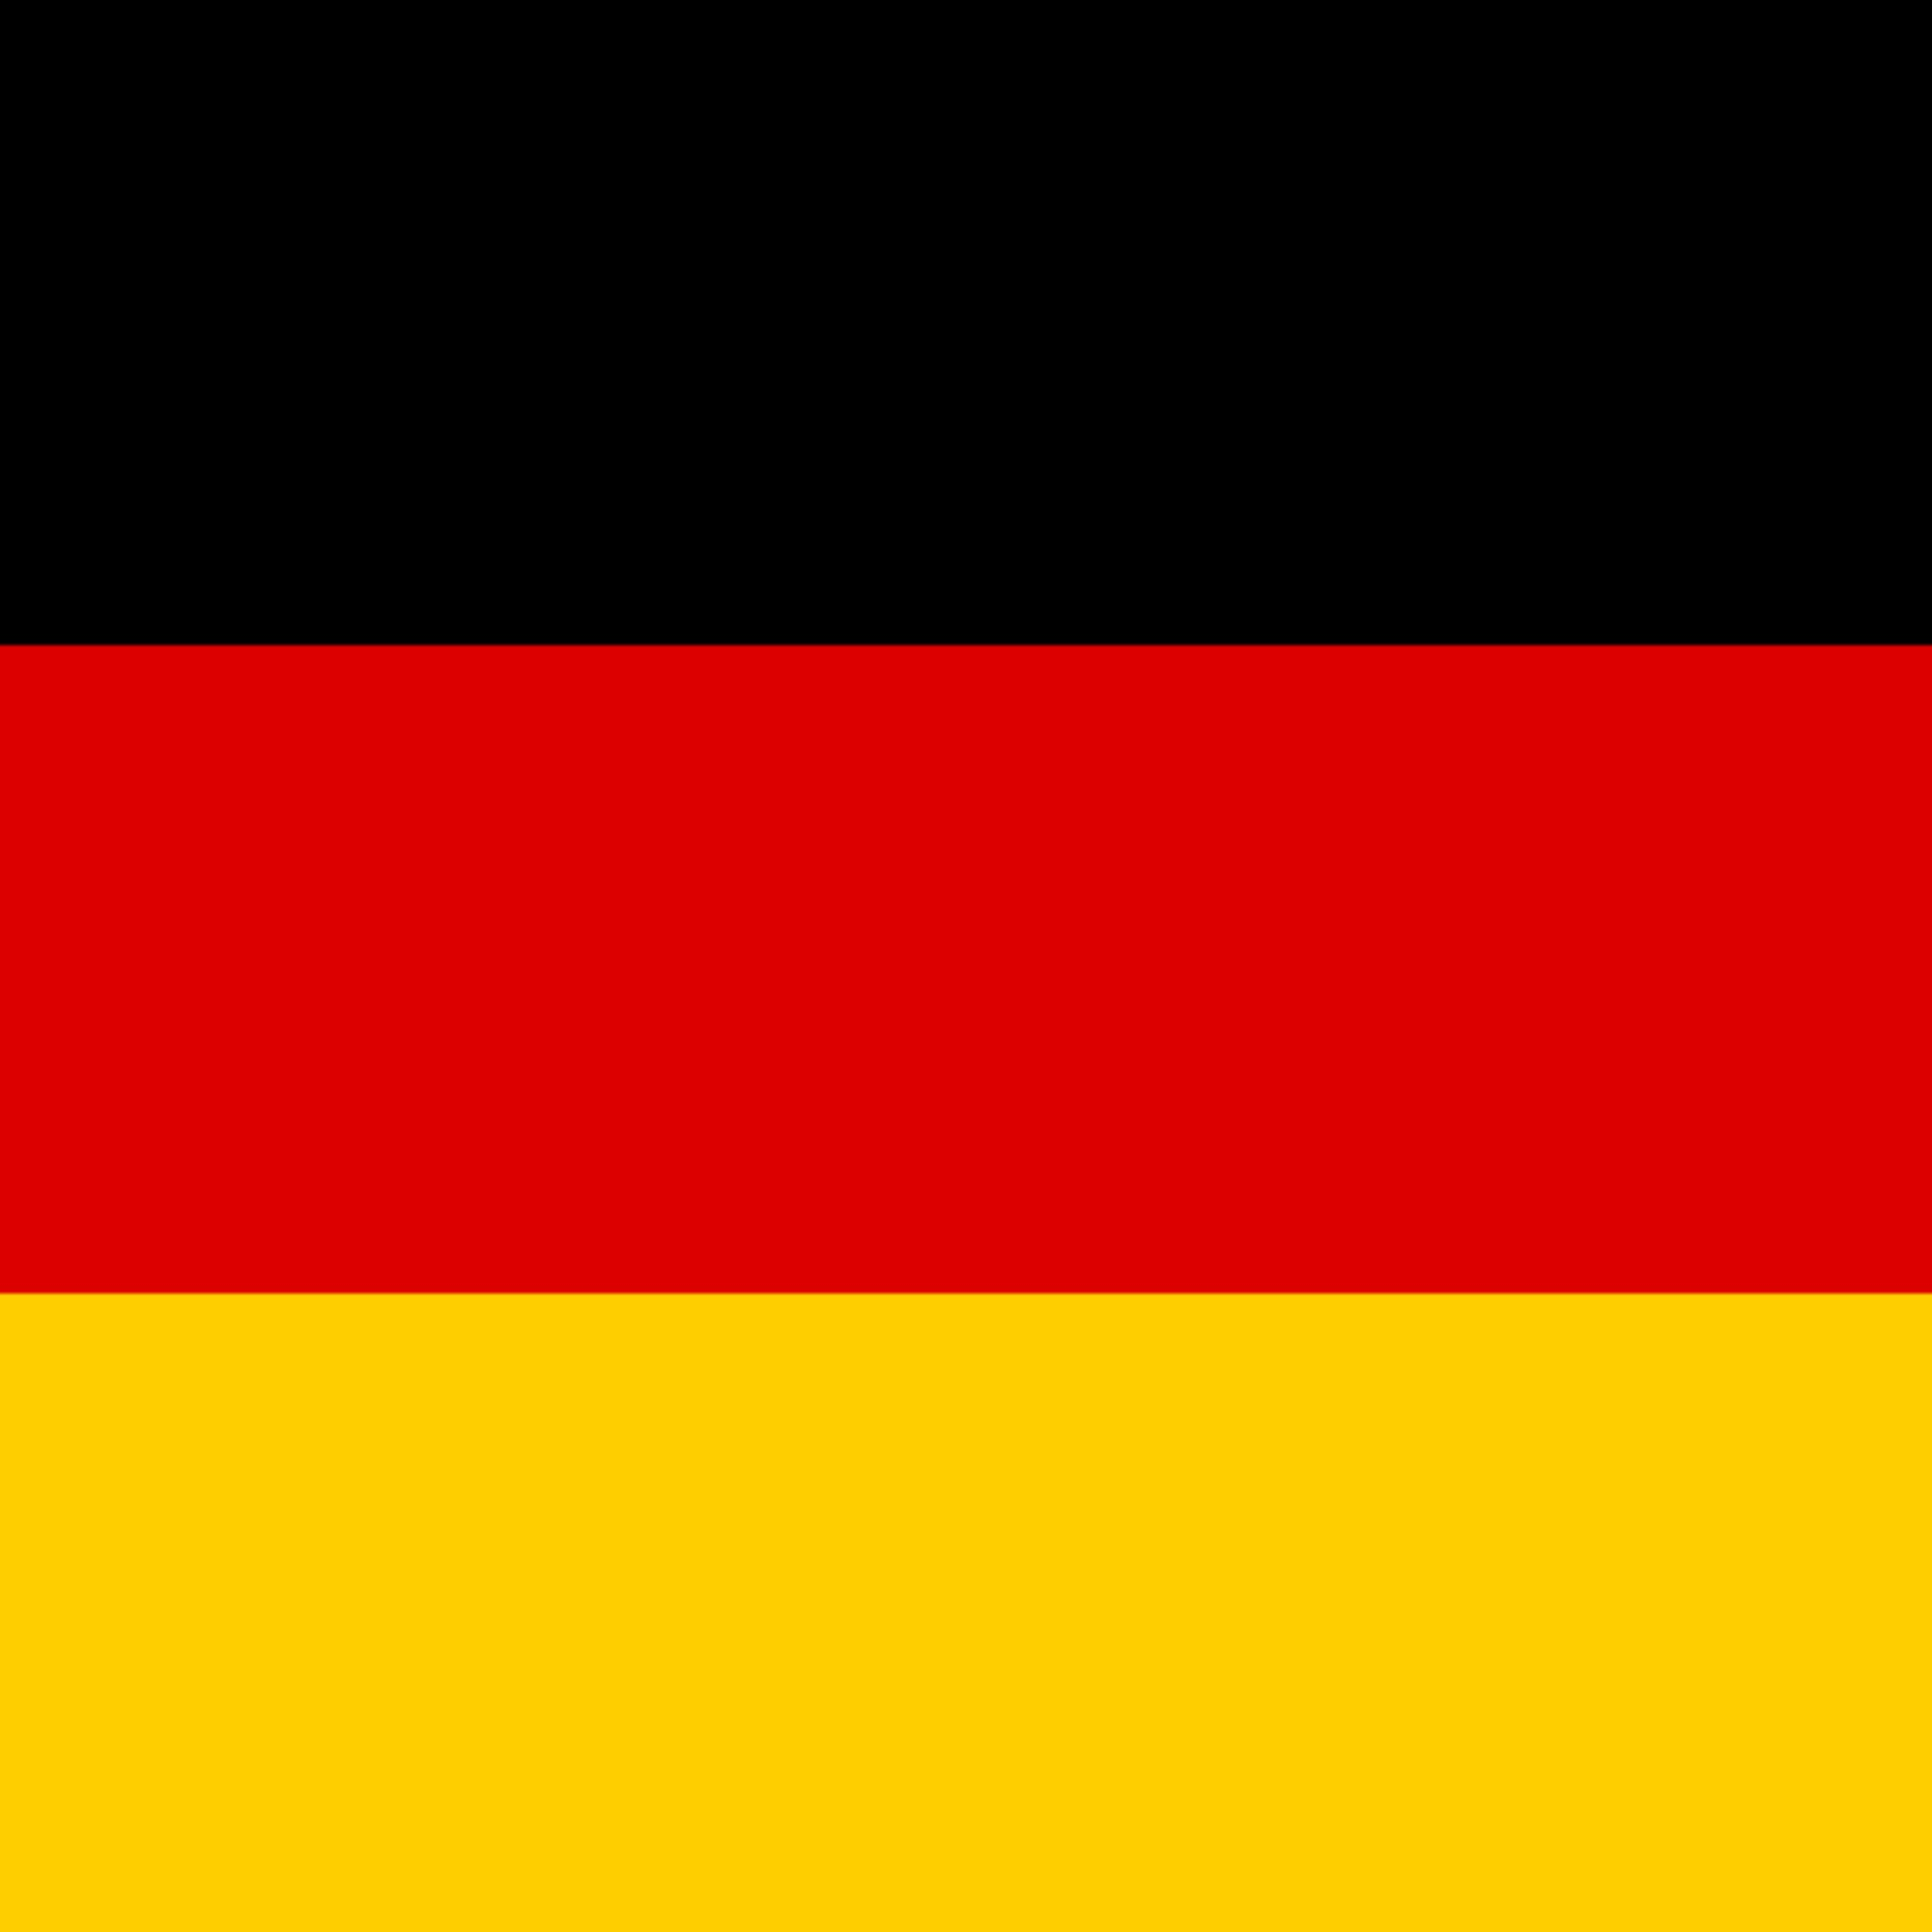 Honorary Consulate of Germany (Alicante)